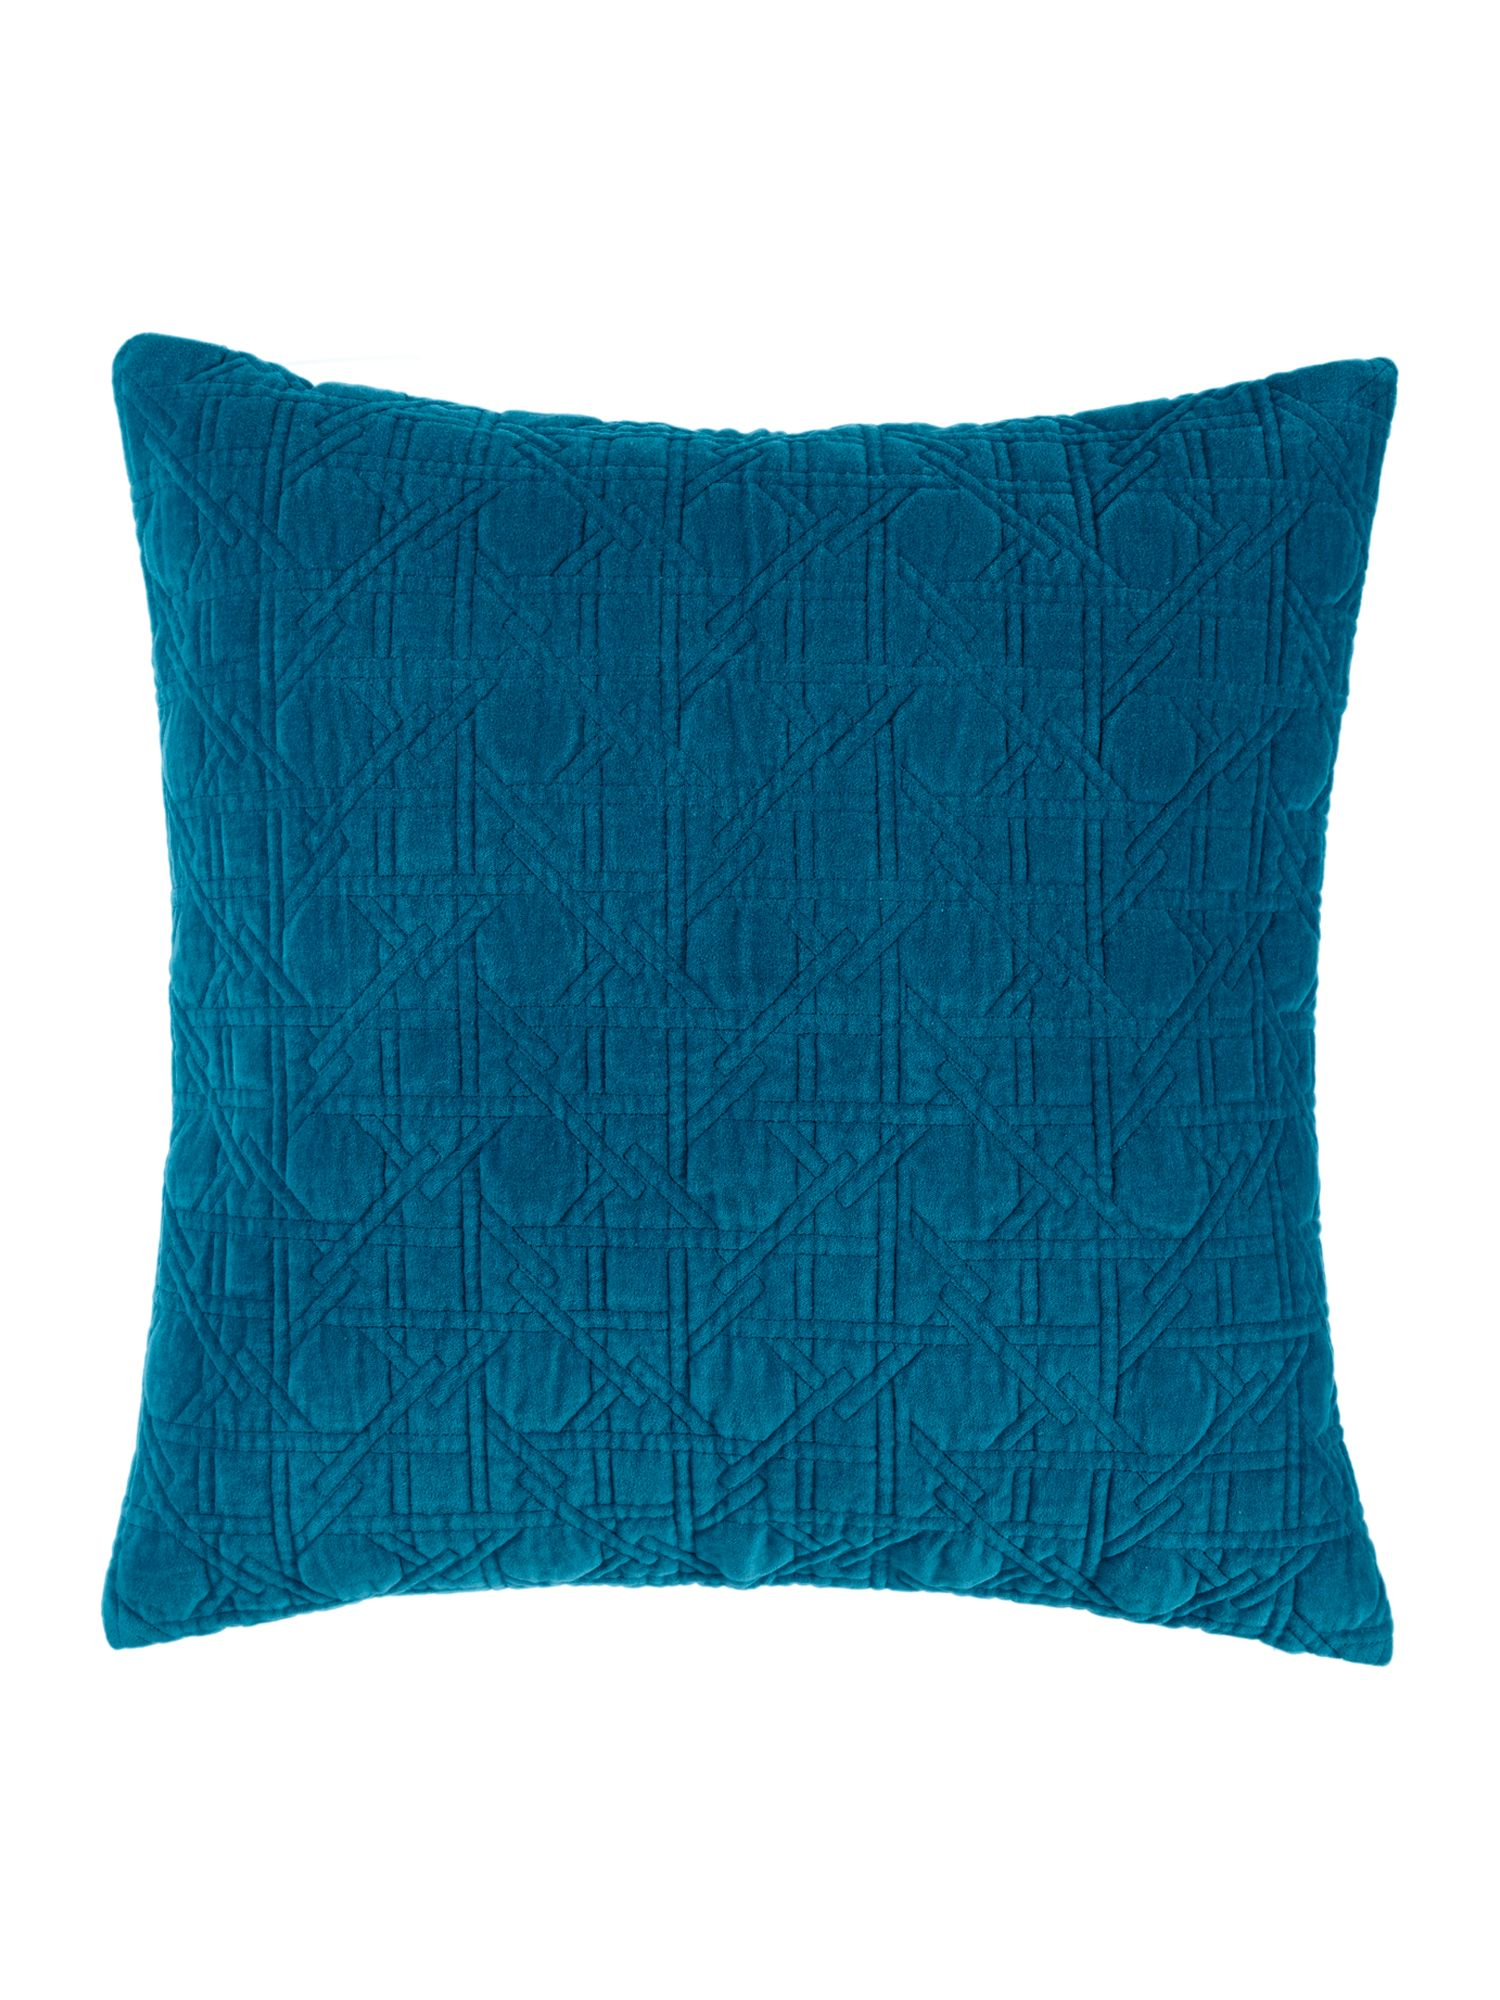 Living by Christiane Lemieux Living by Christiane Lemieux Geometric design velvet sham, teal